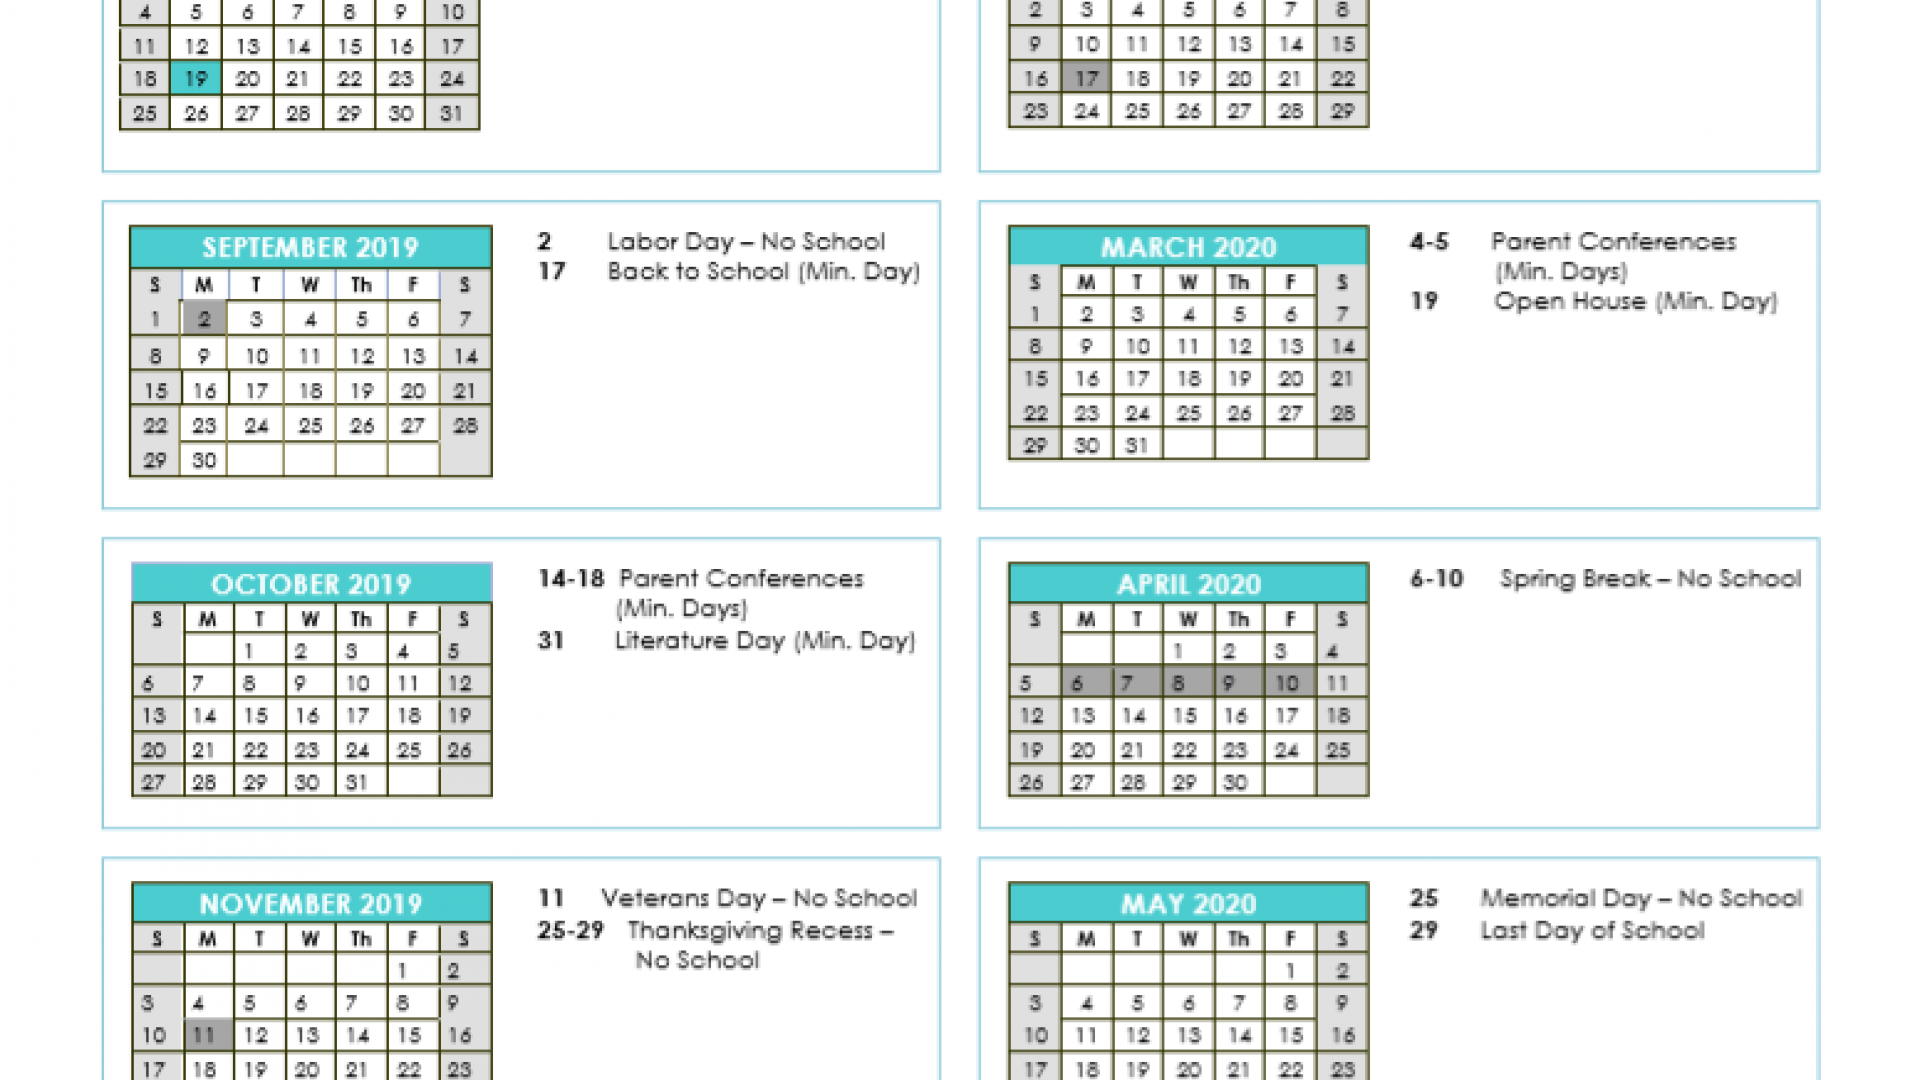 2019-2020 Spcs Oceanside School Calendar - Oceanside with regard to Oceanside Unified School District Calendar